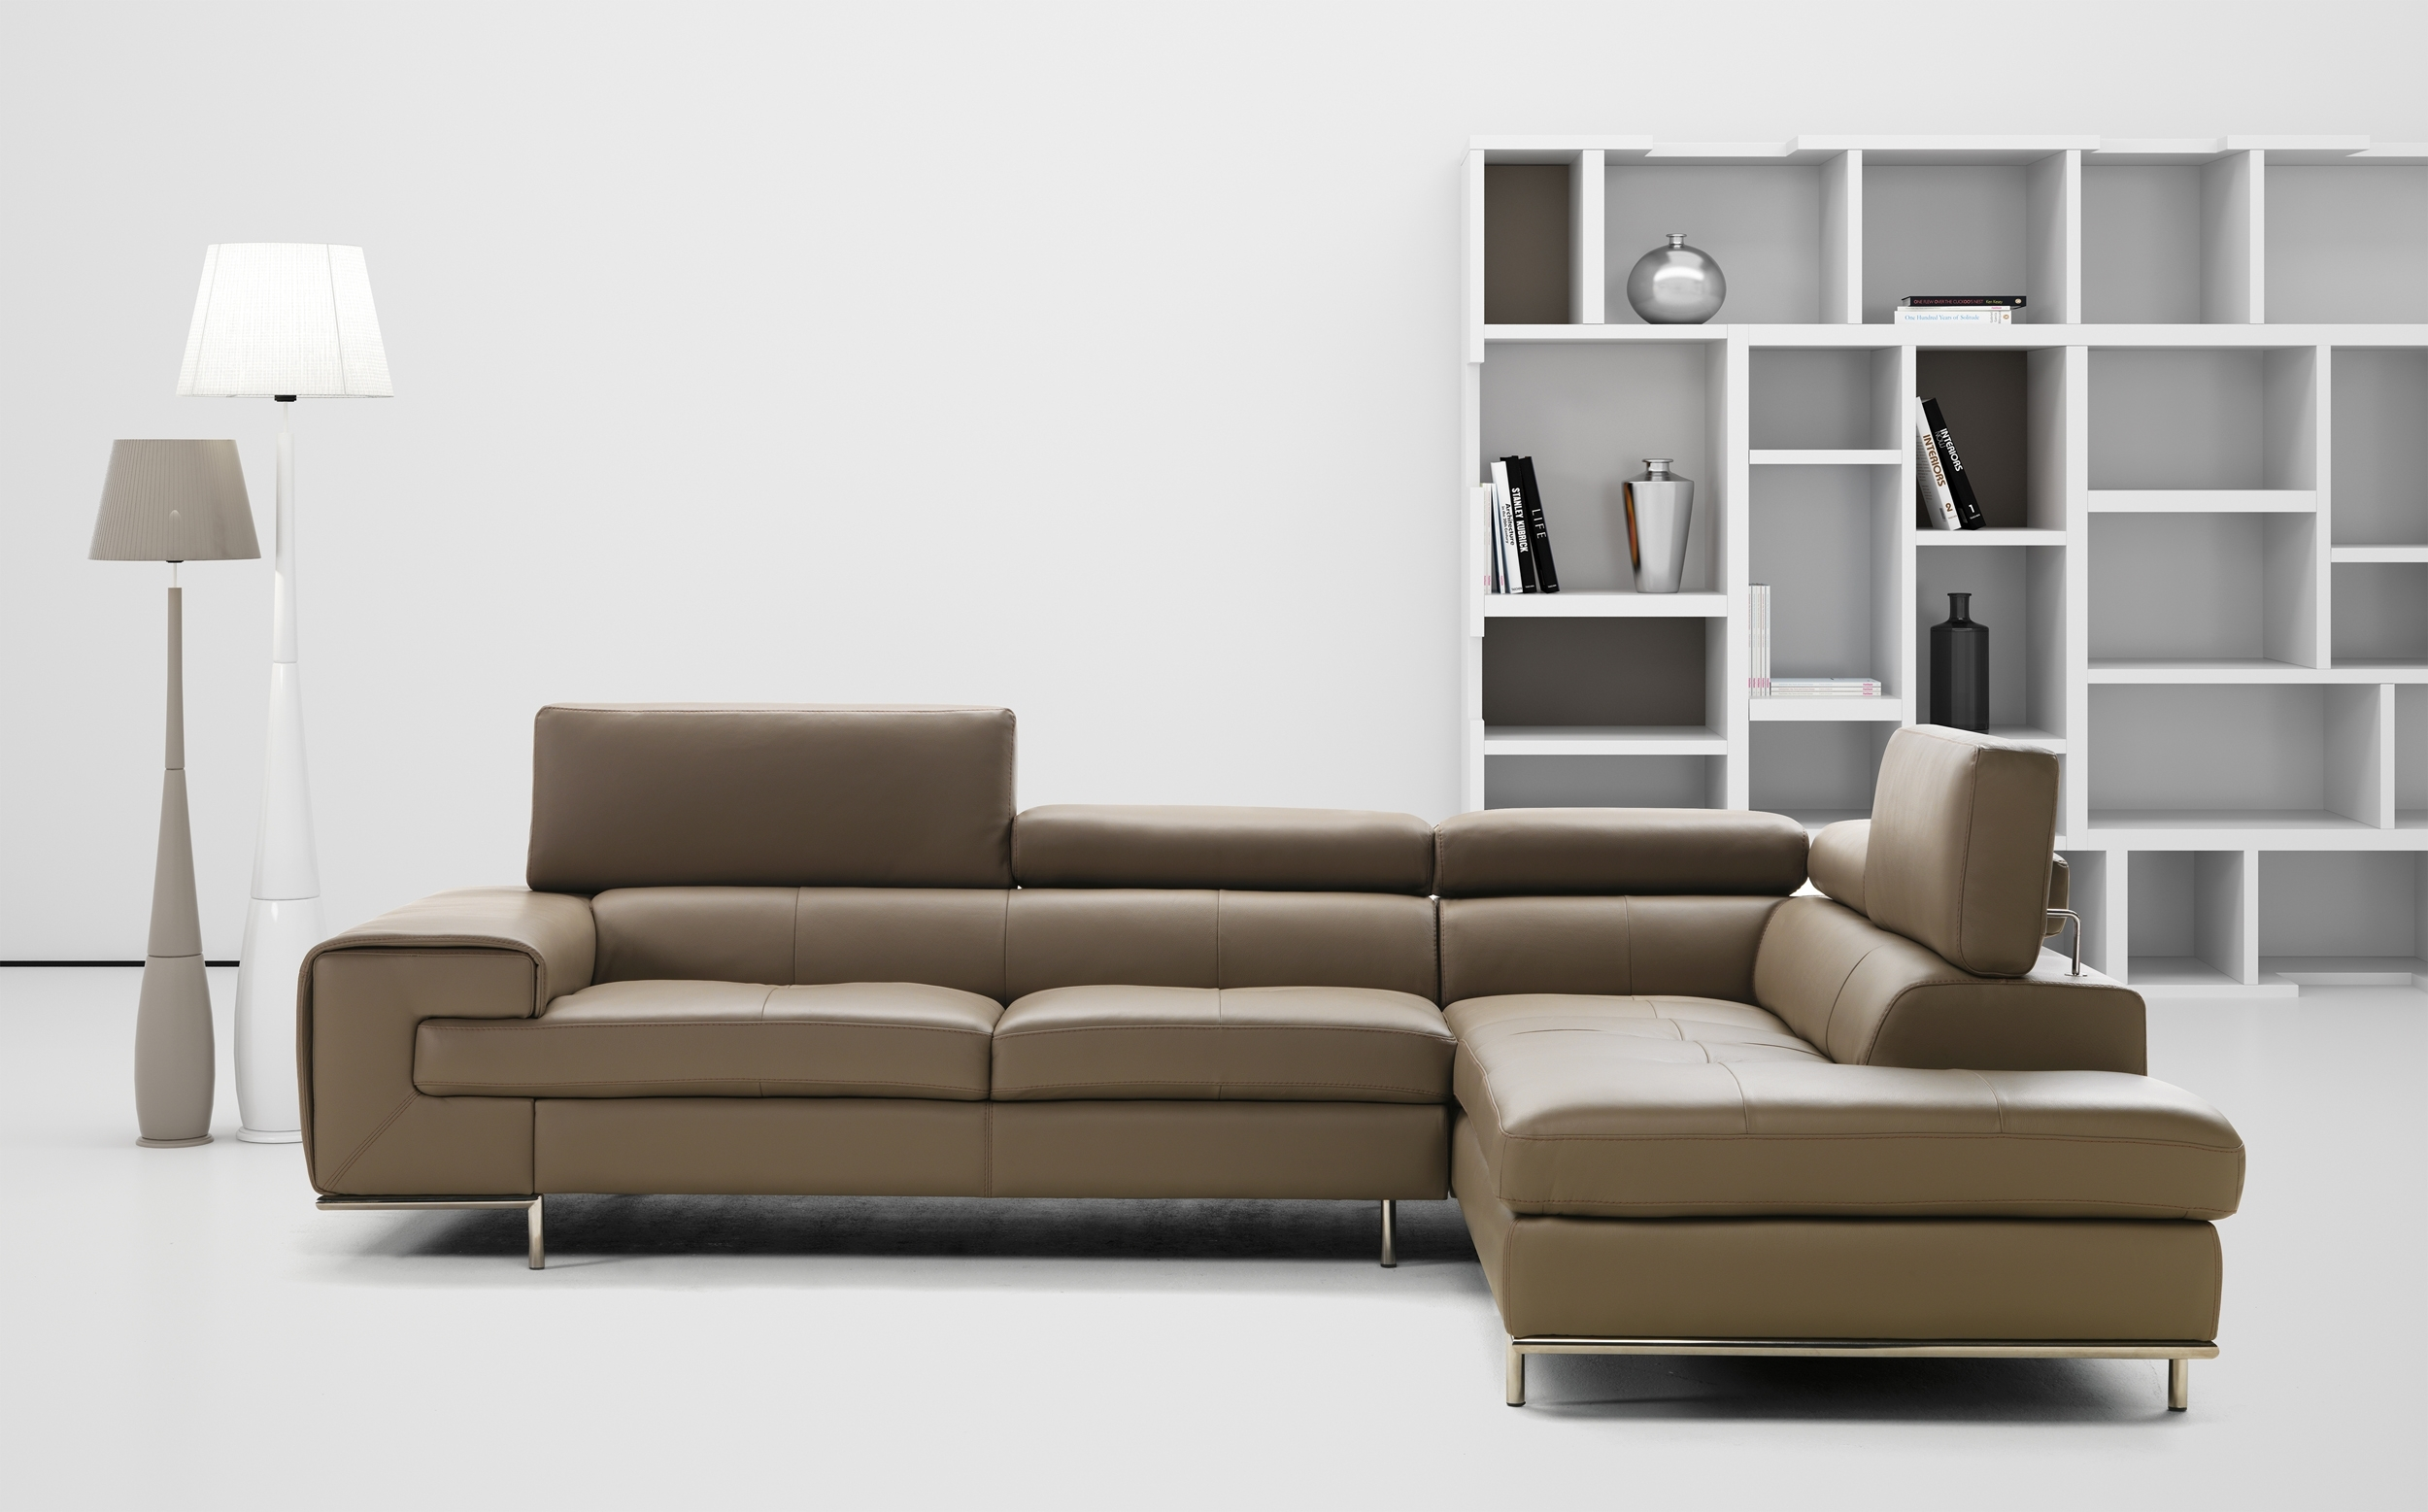 Real Leather Tufted Sectional Sofa Memphis Tennessee Industria With Regard To Tufted Sectional Sofas (Image 5 of 10)